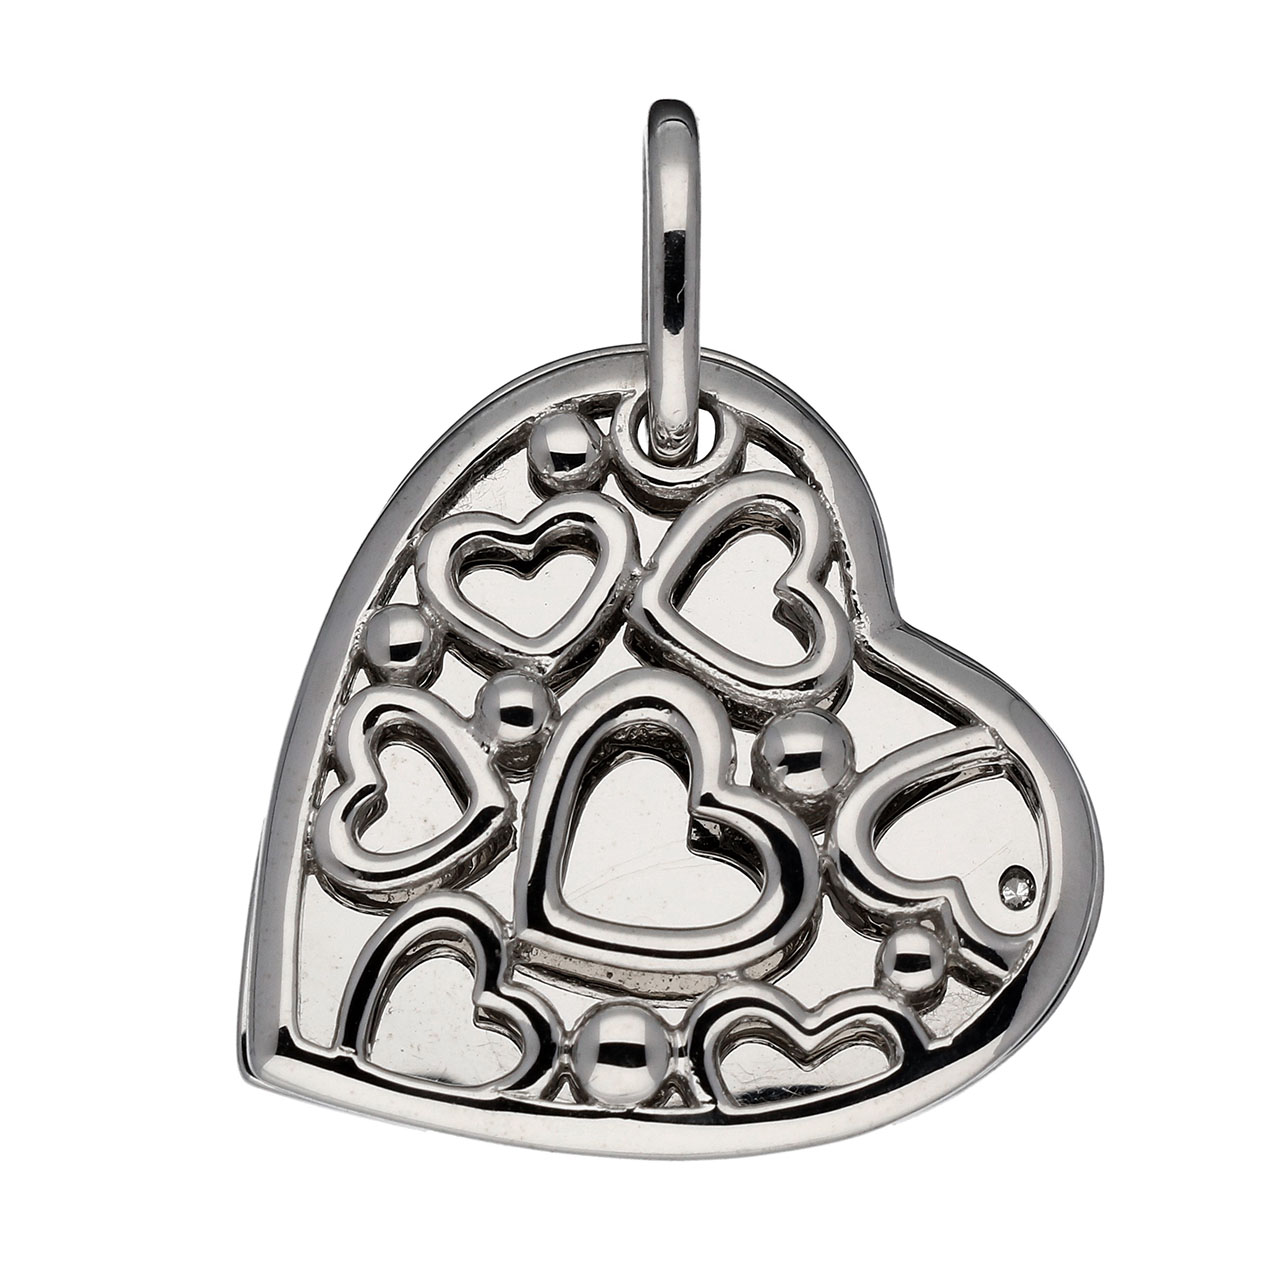 Lifetime Love Zilveren Hanger Medaillon Hart met Diamant 0.005 - 24 mm 145.0118.00